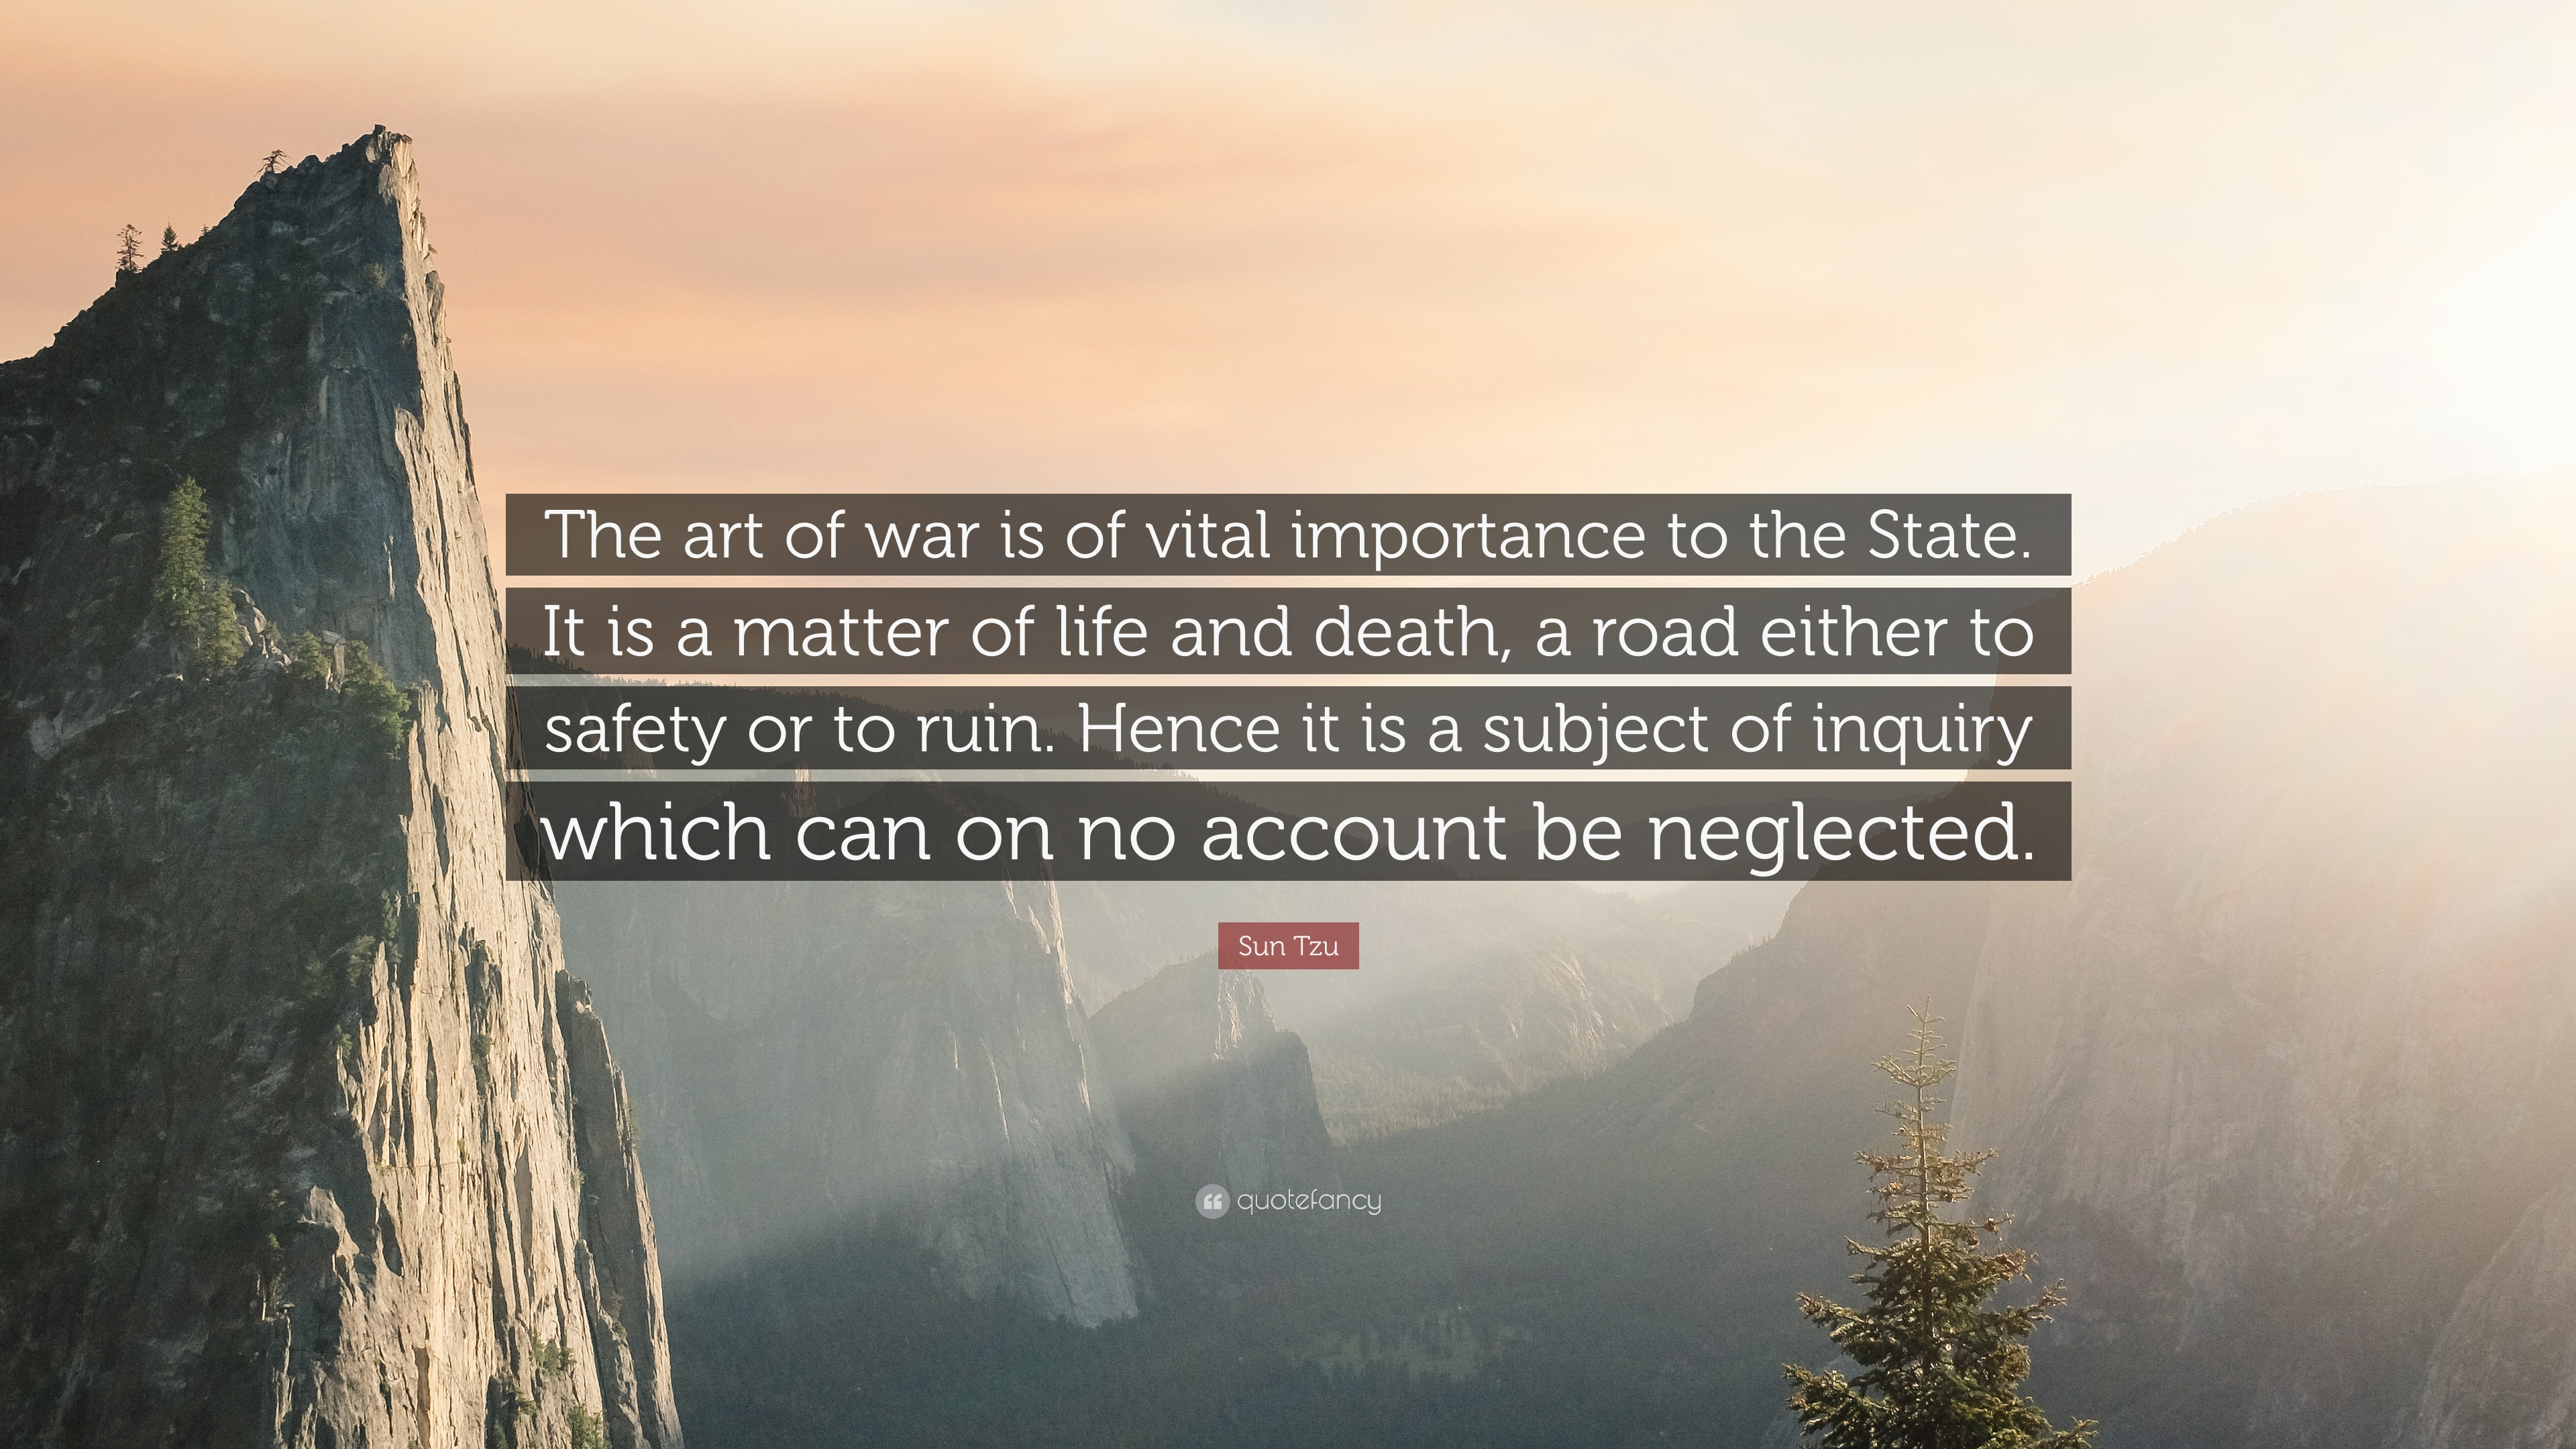 Art Of War Quotes | Sun Tzu Quote The Art Of War Is Of Vital Importance To The State